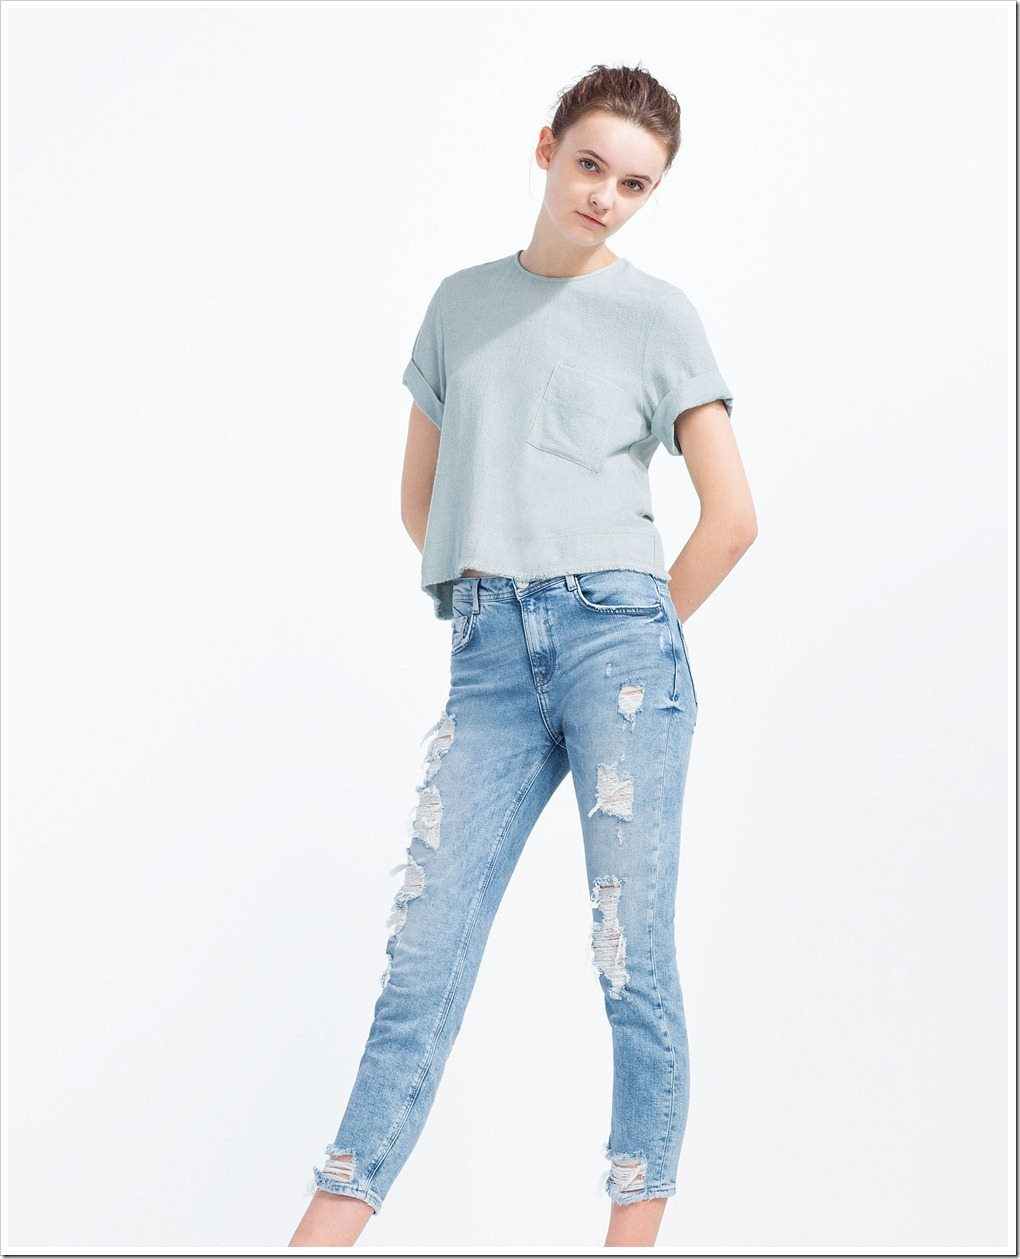 ss16 denim styles from zara zara collection denim